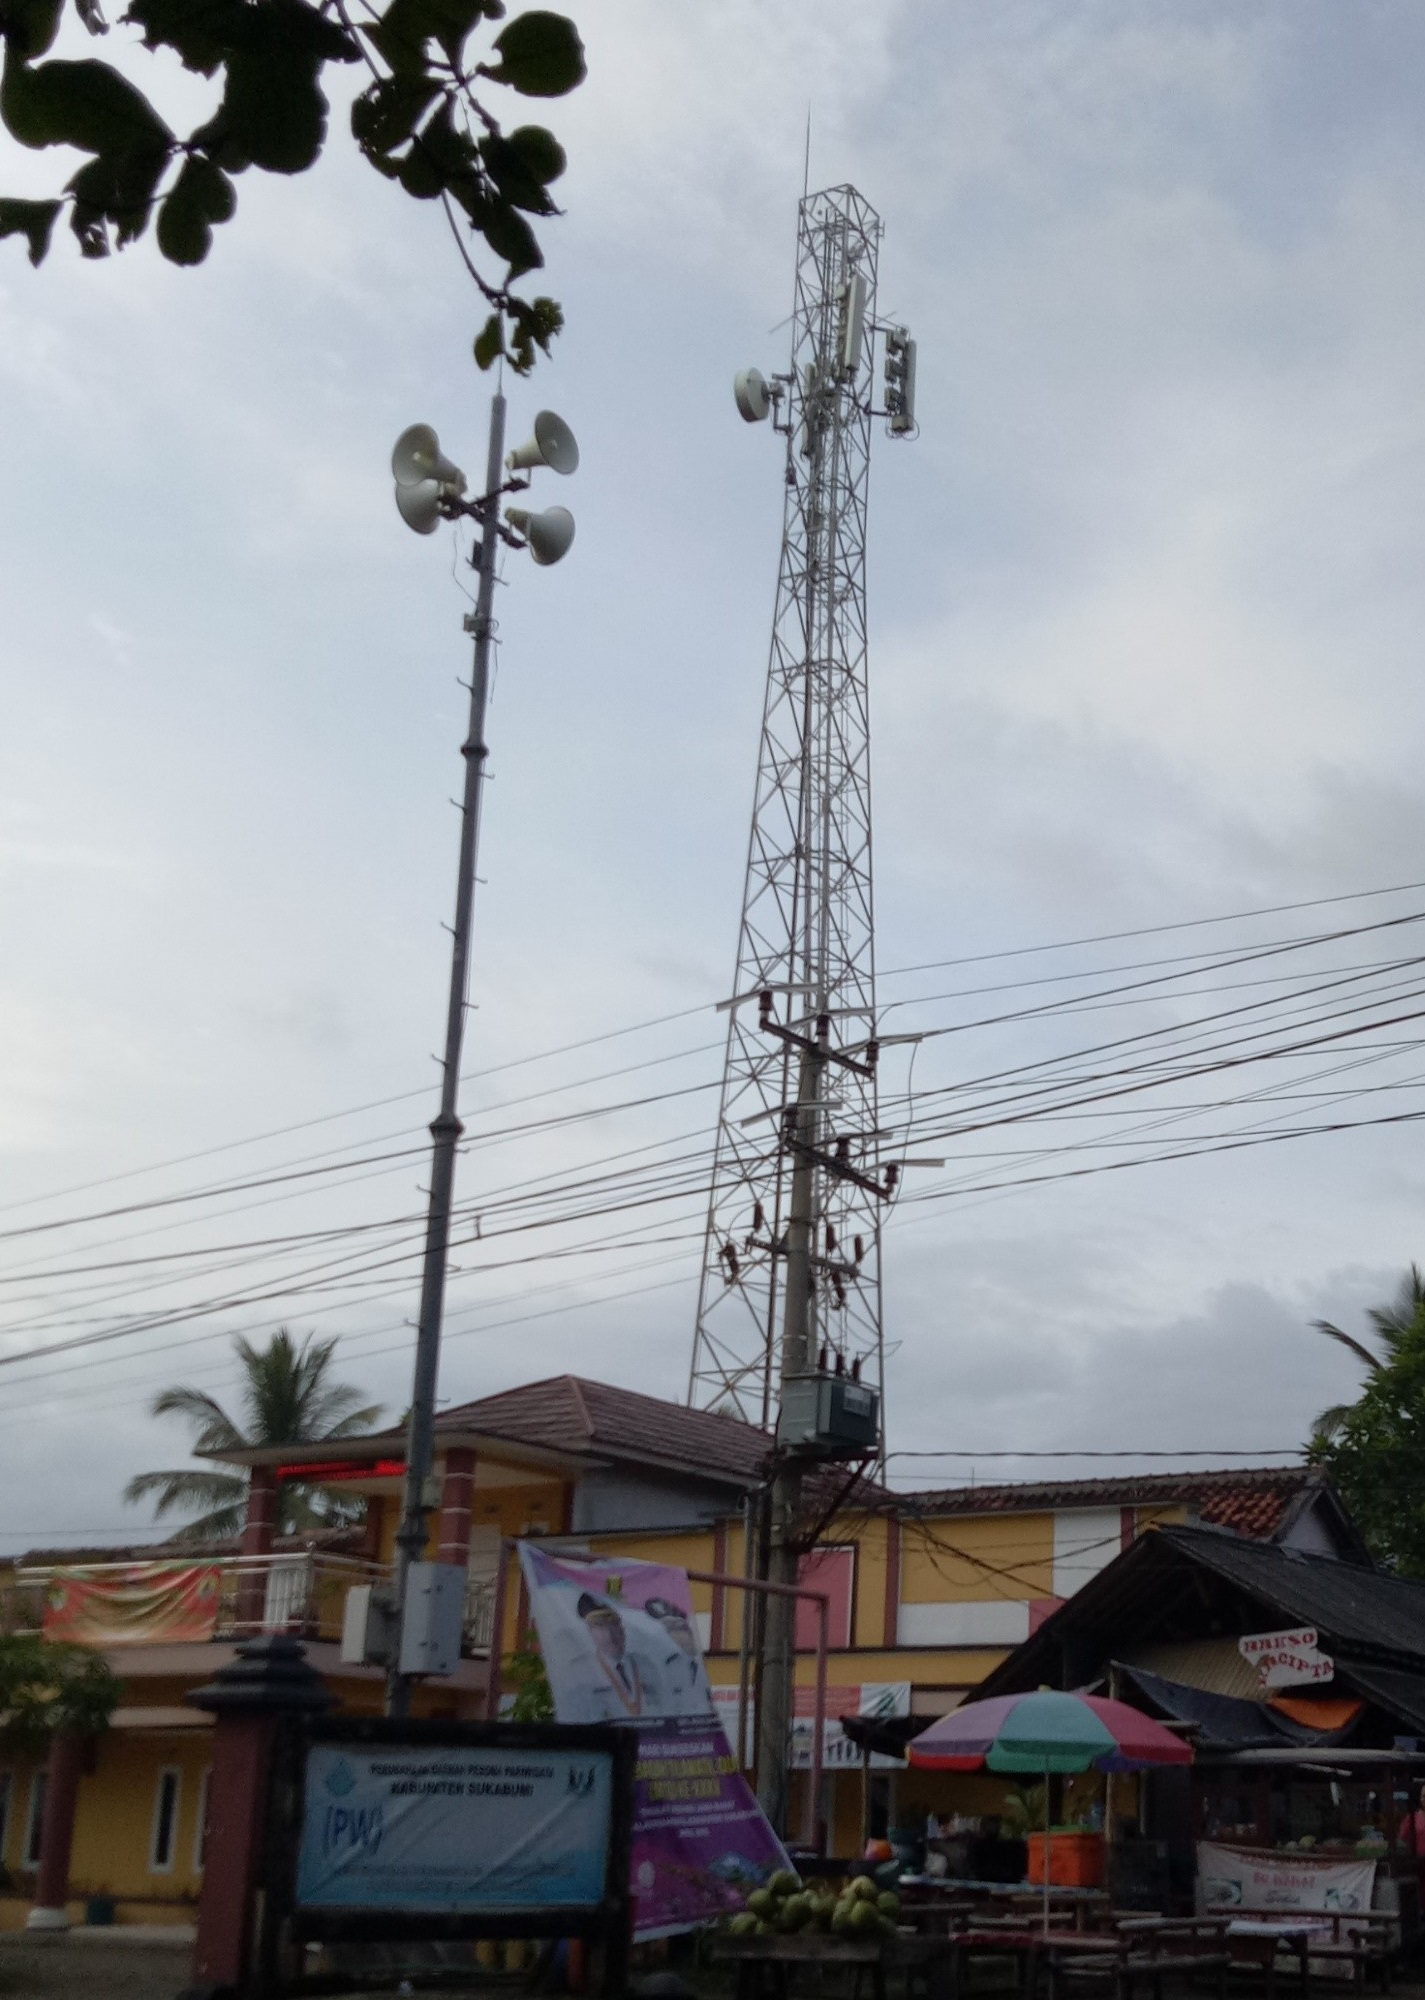 Tsunami early warning sirens have been installed throughout coastal communities